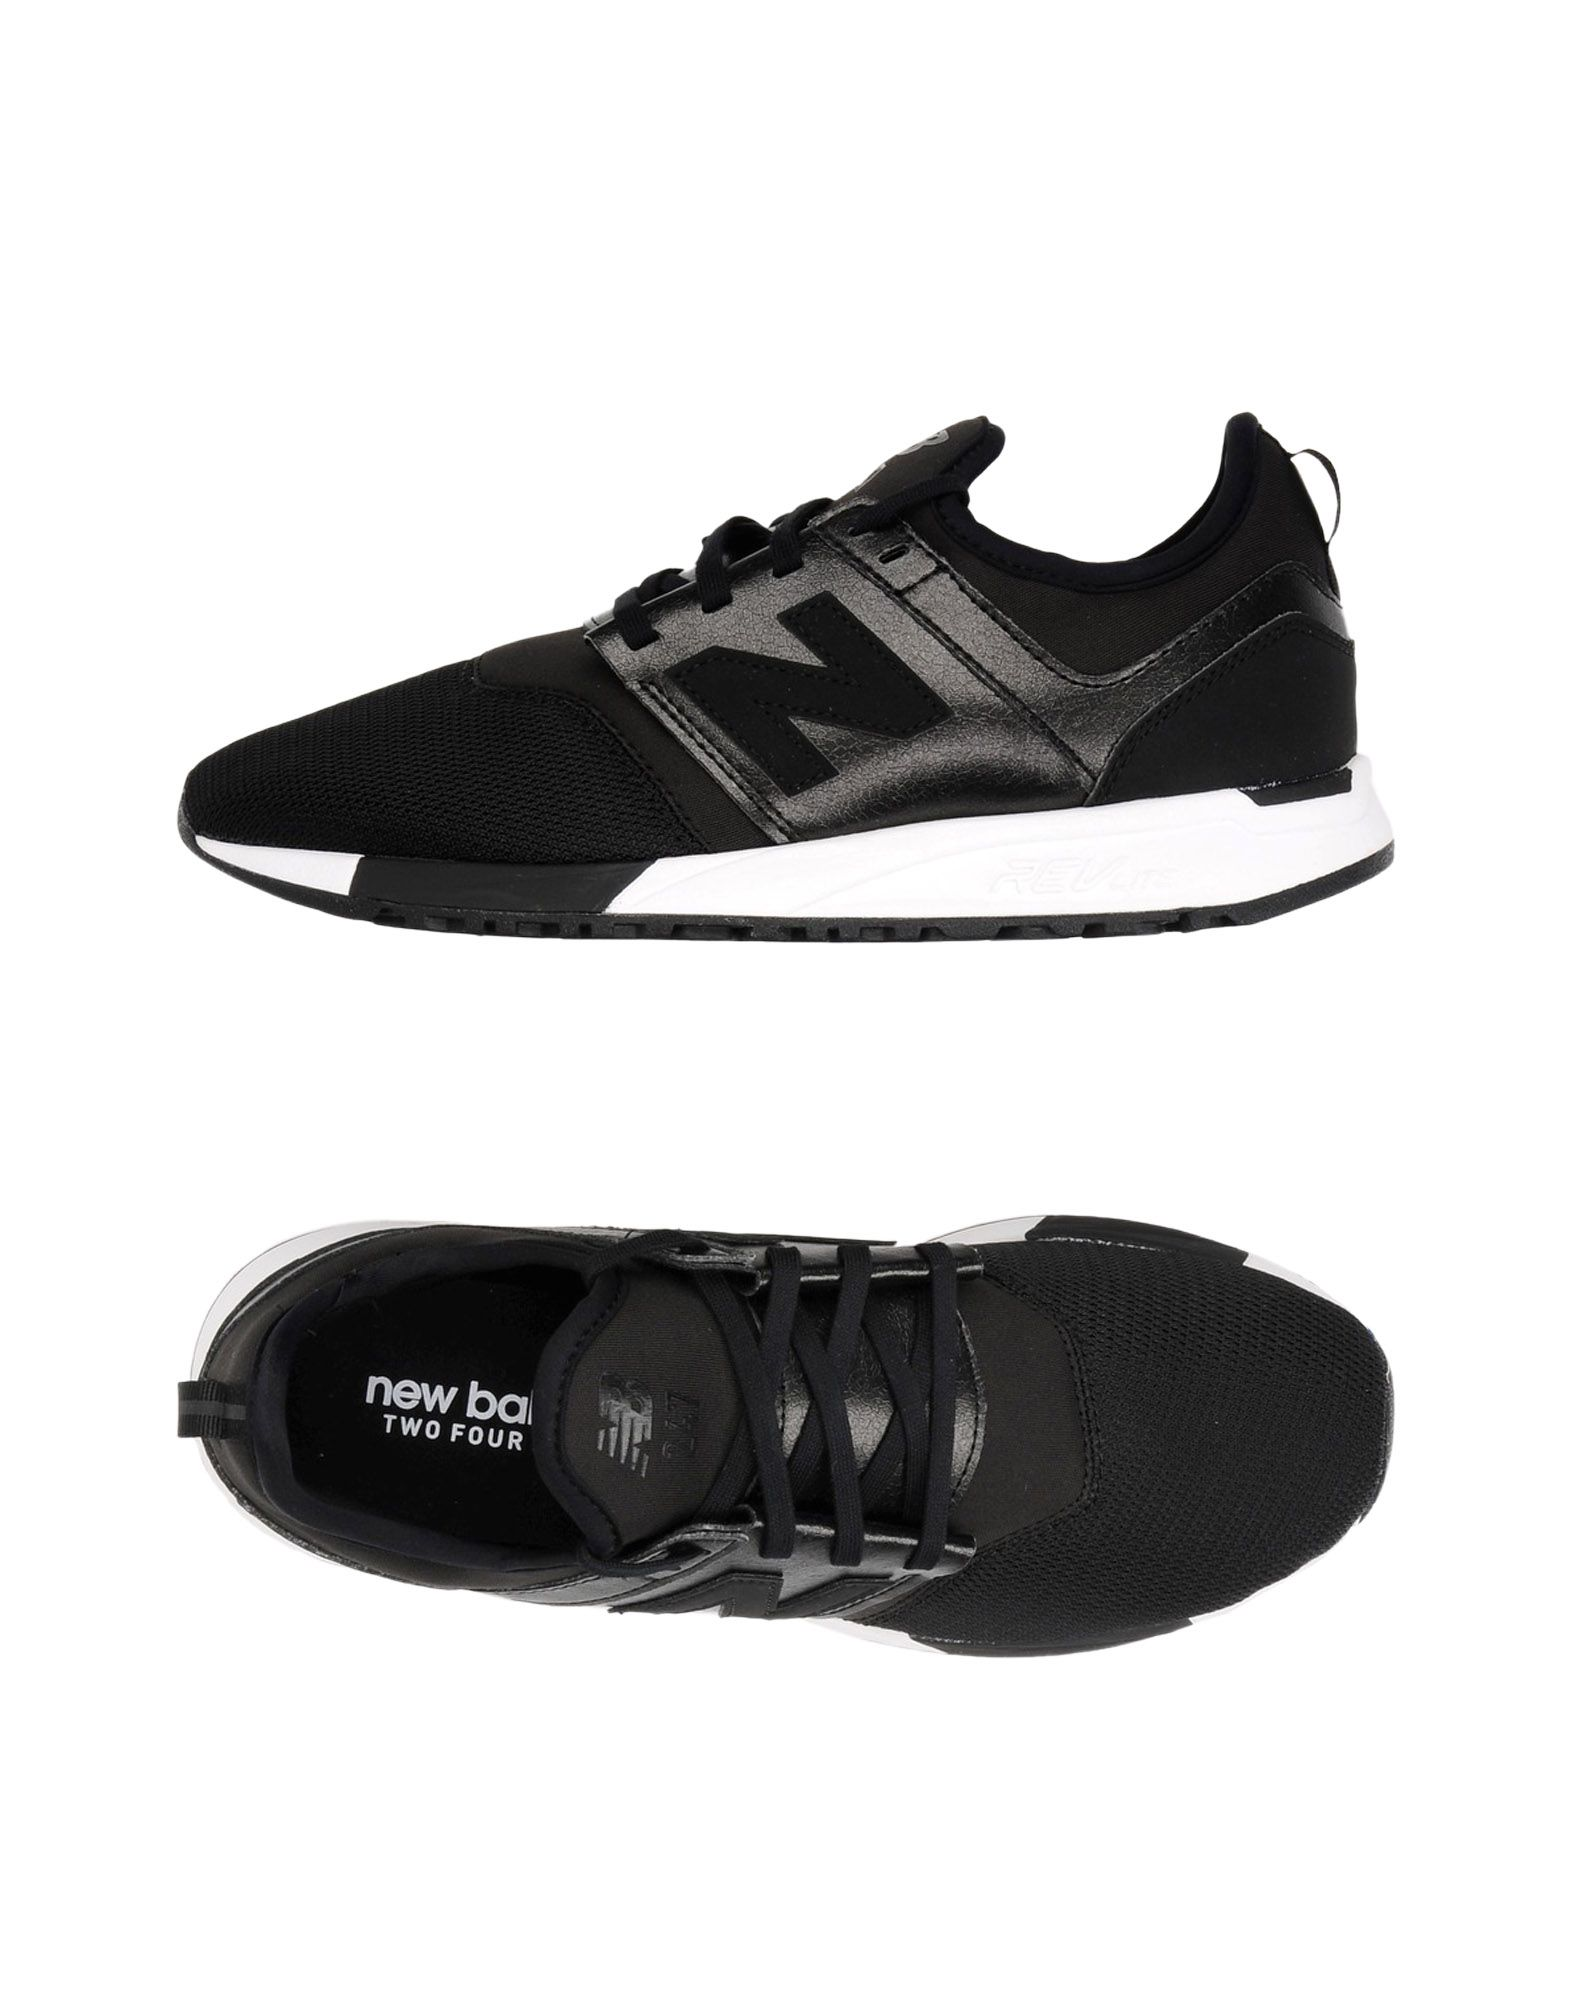 New Balance 247 Synthetic beliebte  11393076DQ Gute Qualität beliebte Synthetic Schuhe dcb967